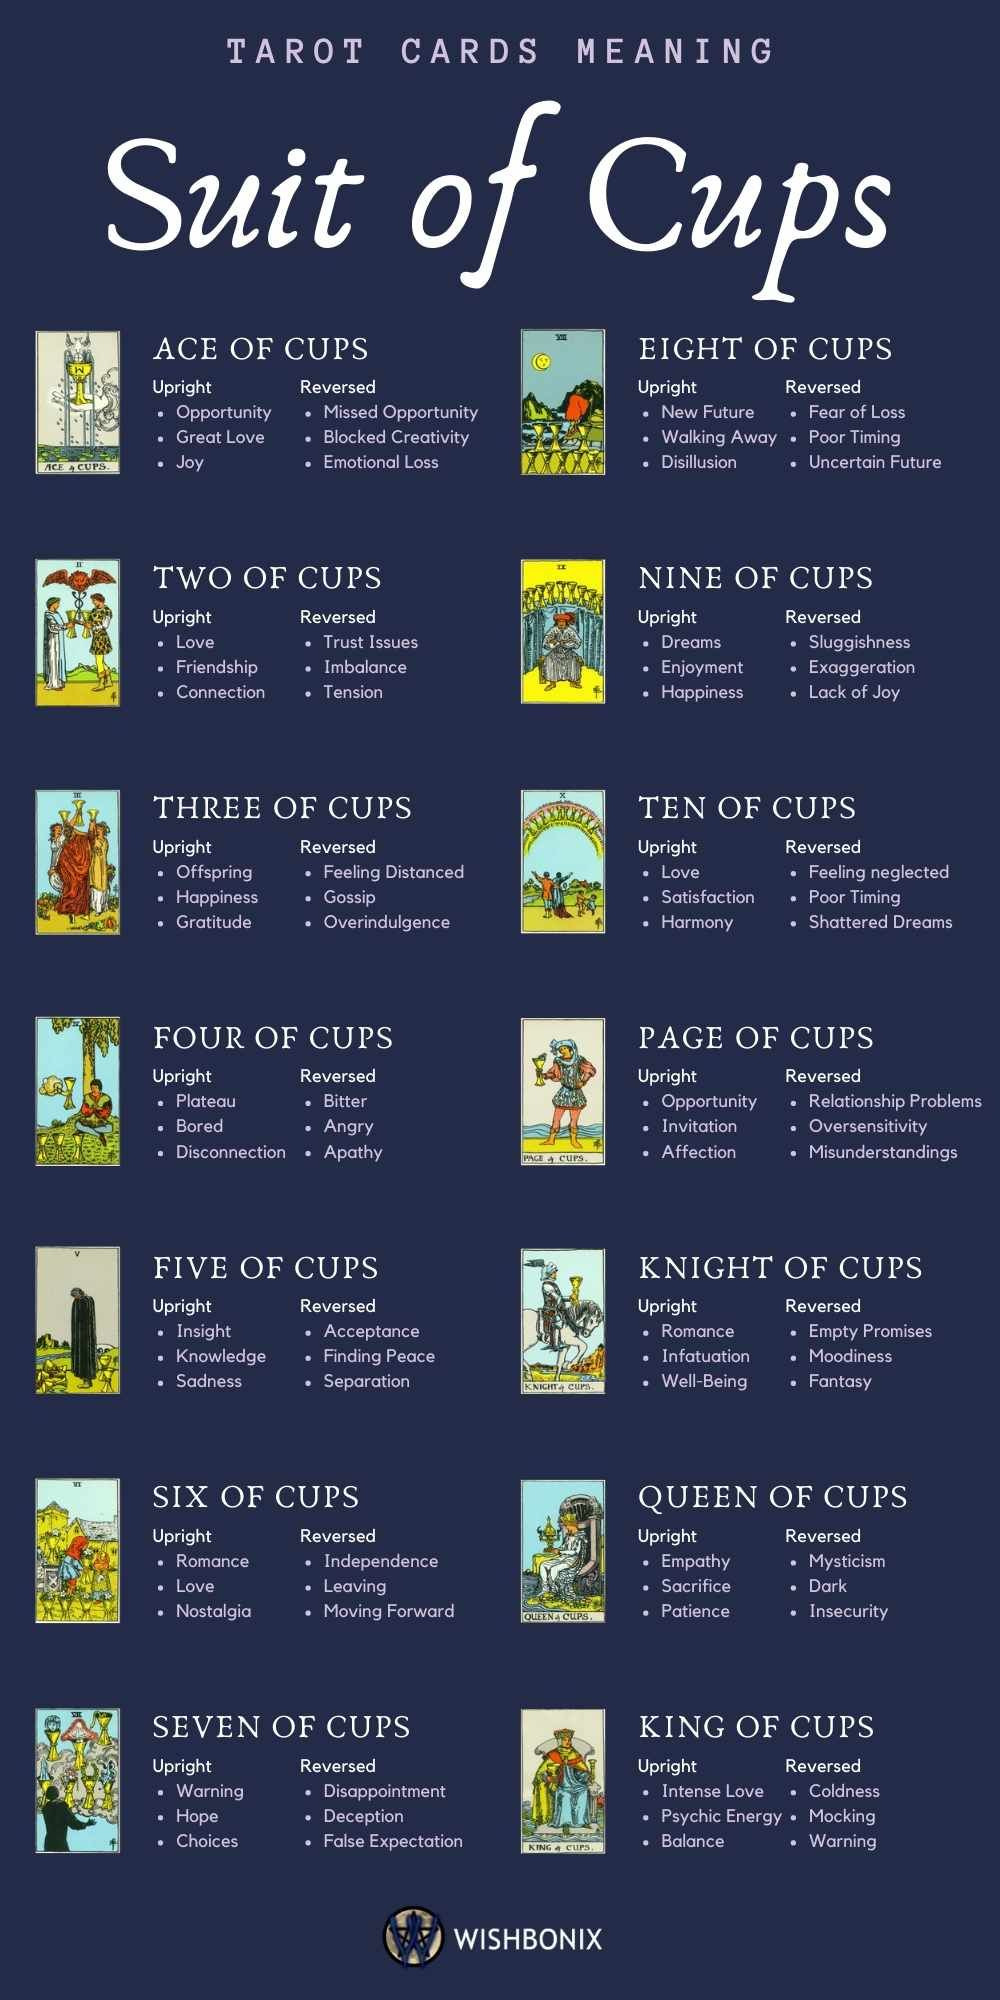 The Suit of Cups - Tarot Cards Meaning